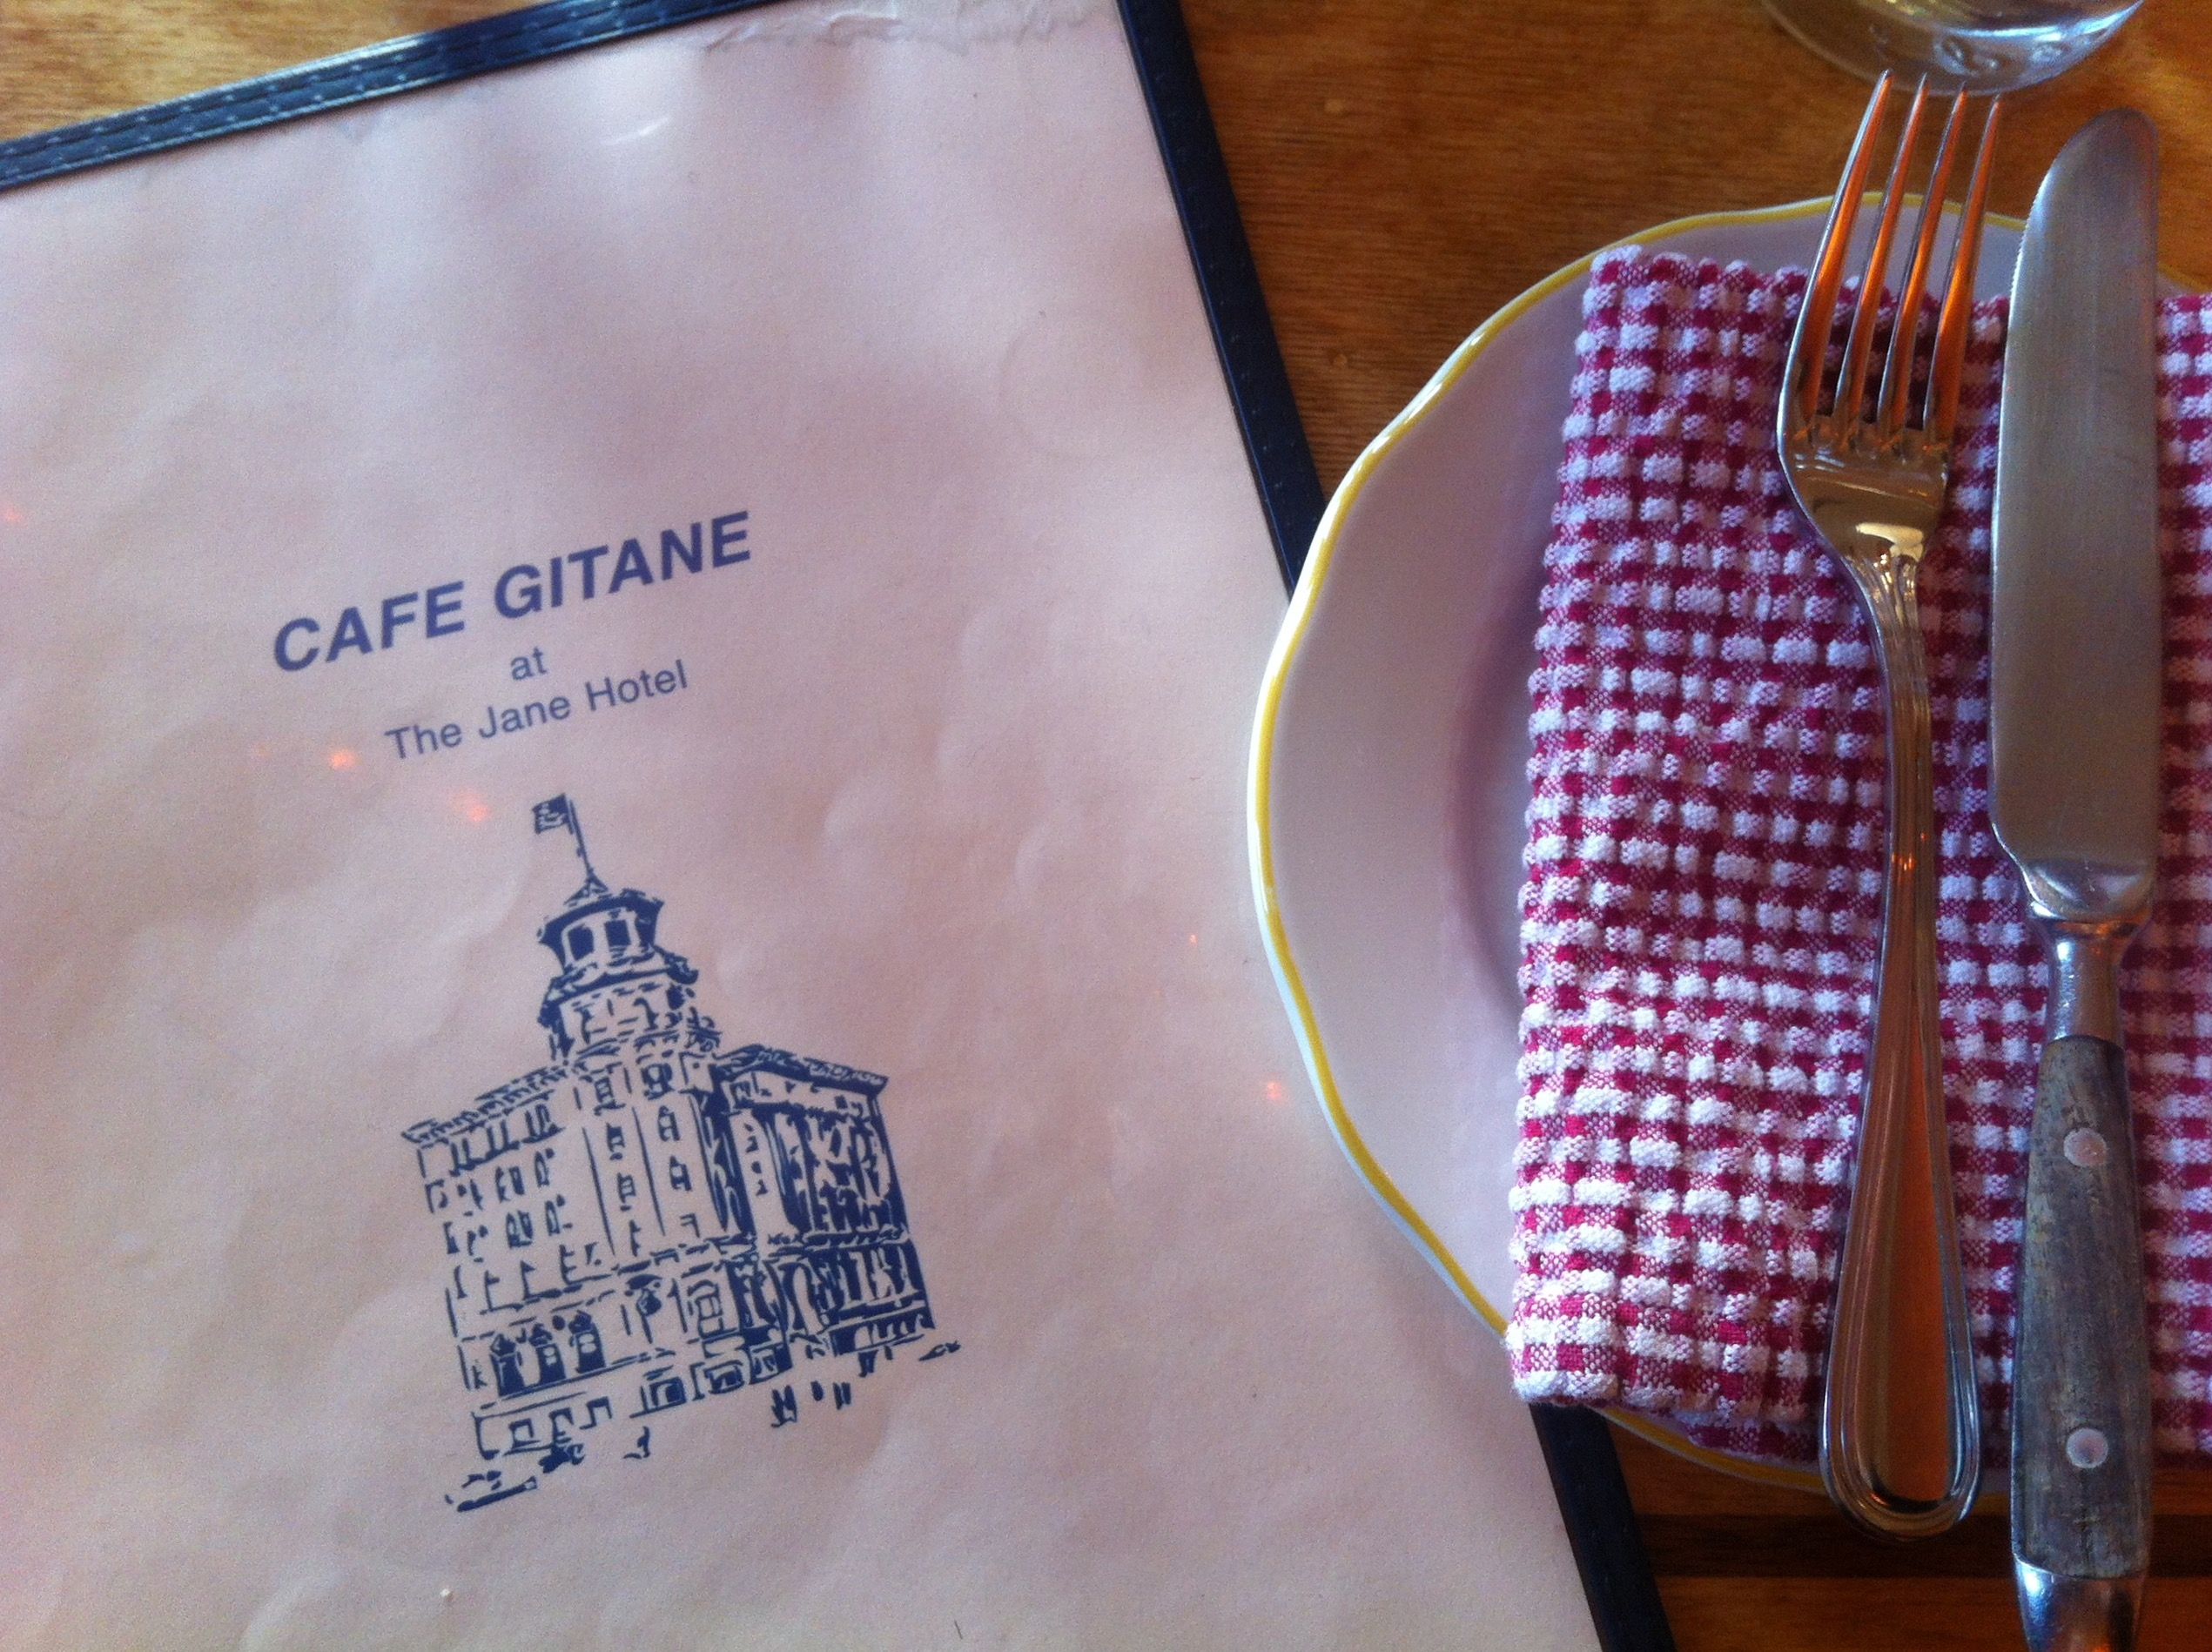 Cafe Gitane At The Jane Hotel Menu